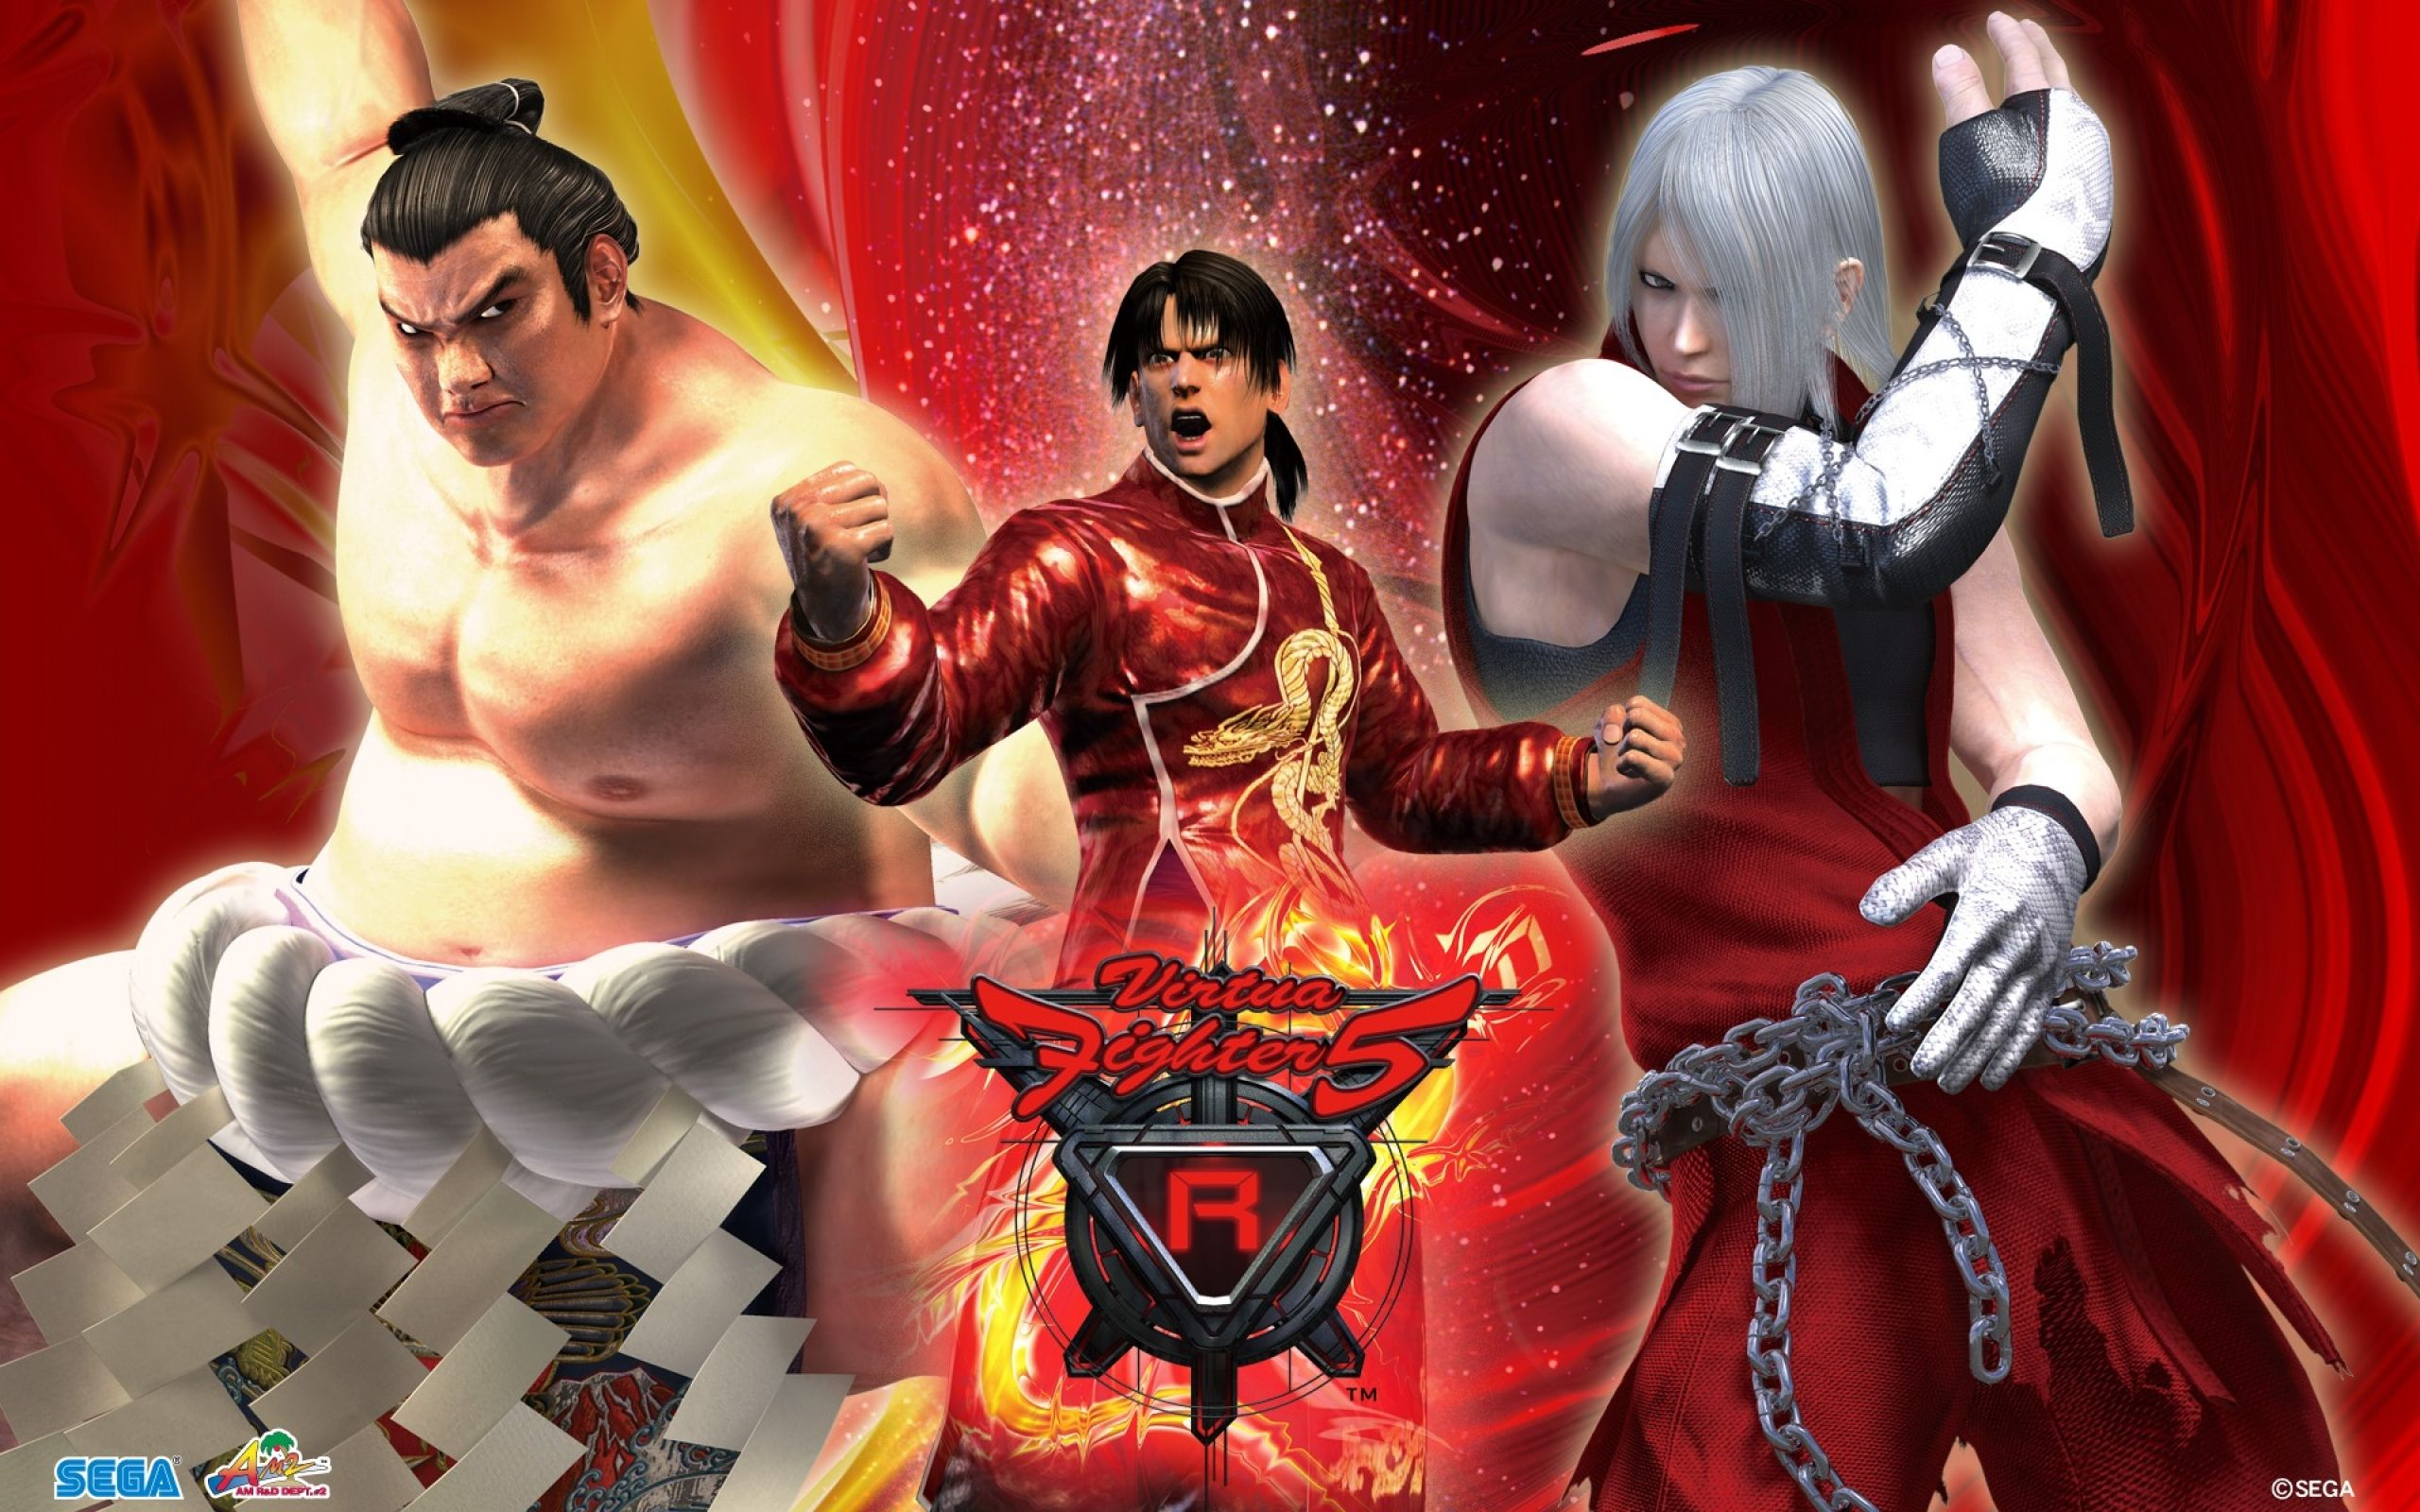 Virtua Fighter Wallpapers - Top Free Virtua Fighter